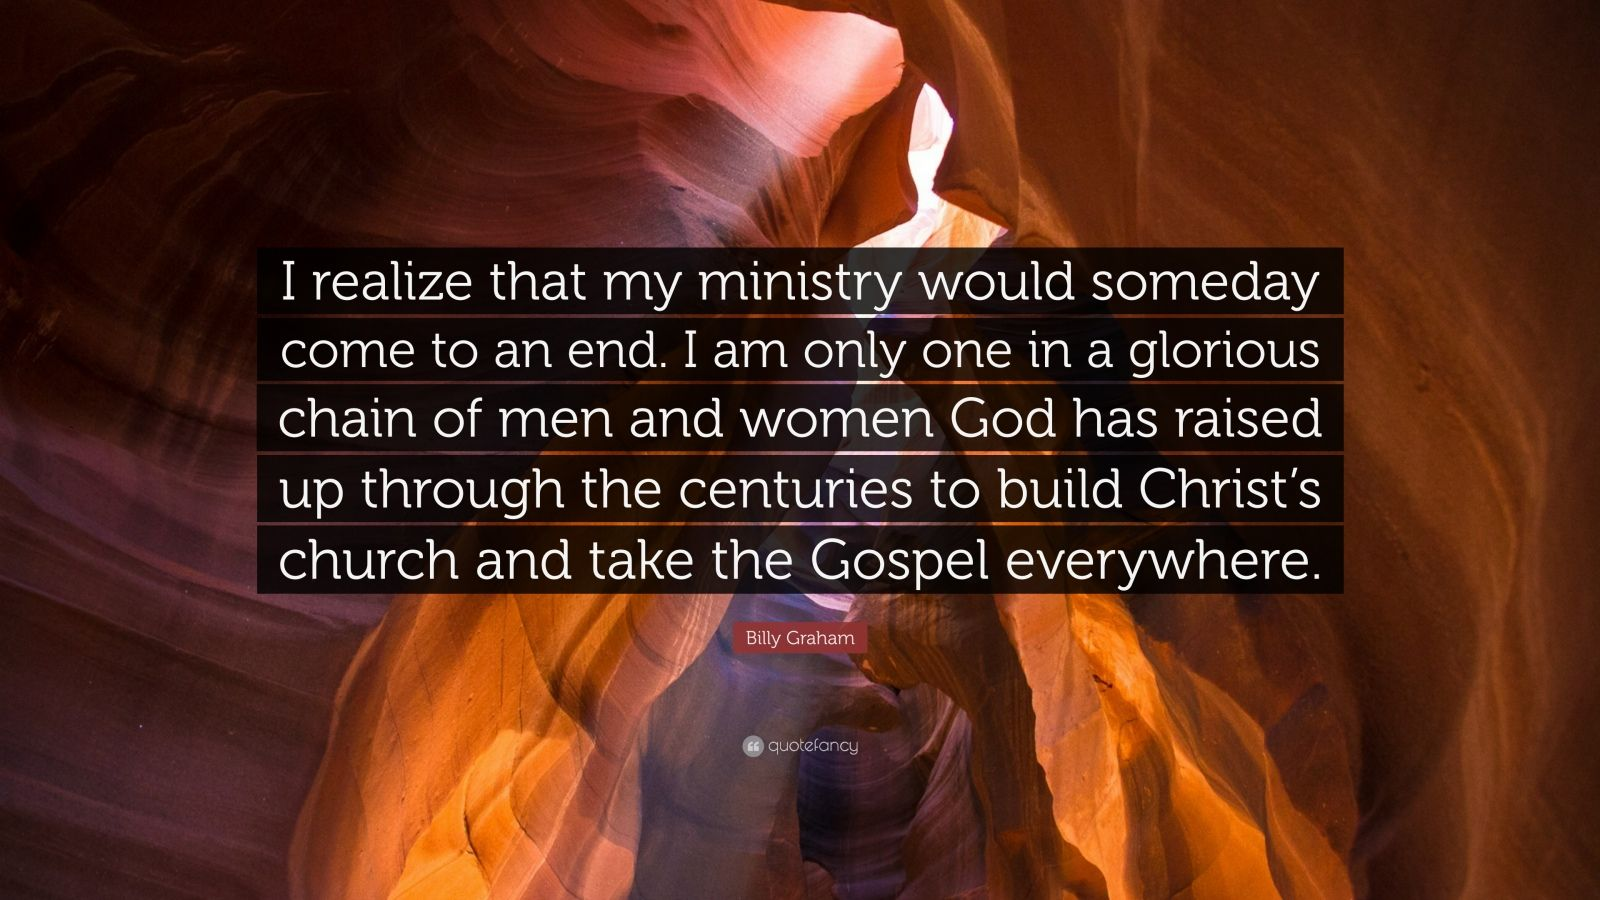 """Billy Graham Quote: """"I realize that my ministry would someday come to an end. I am only one in a glorious chain of men and women God has raised up through the centuries to build Christ's church and take the Gospel everywhere."""""""